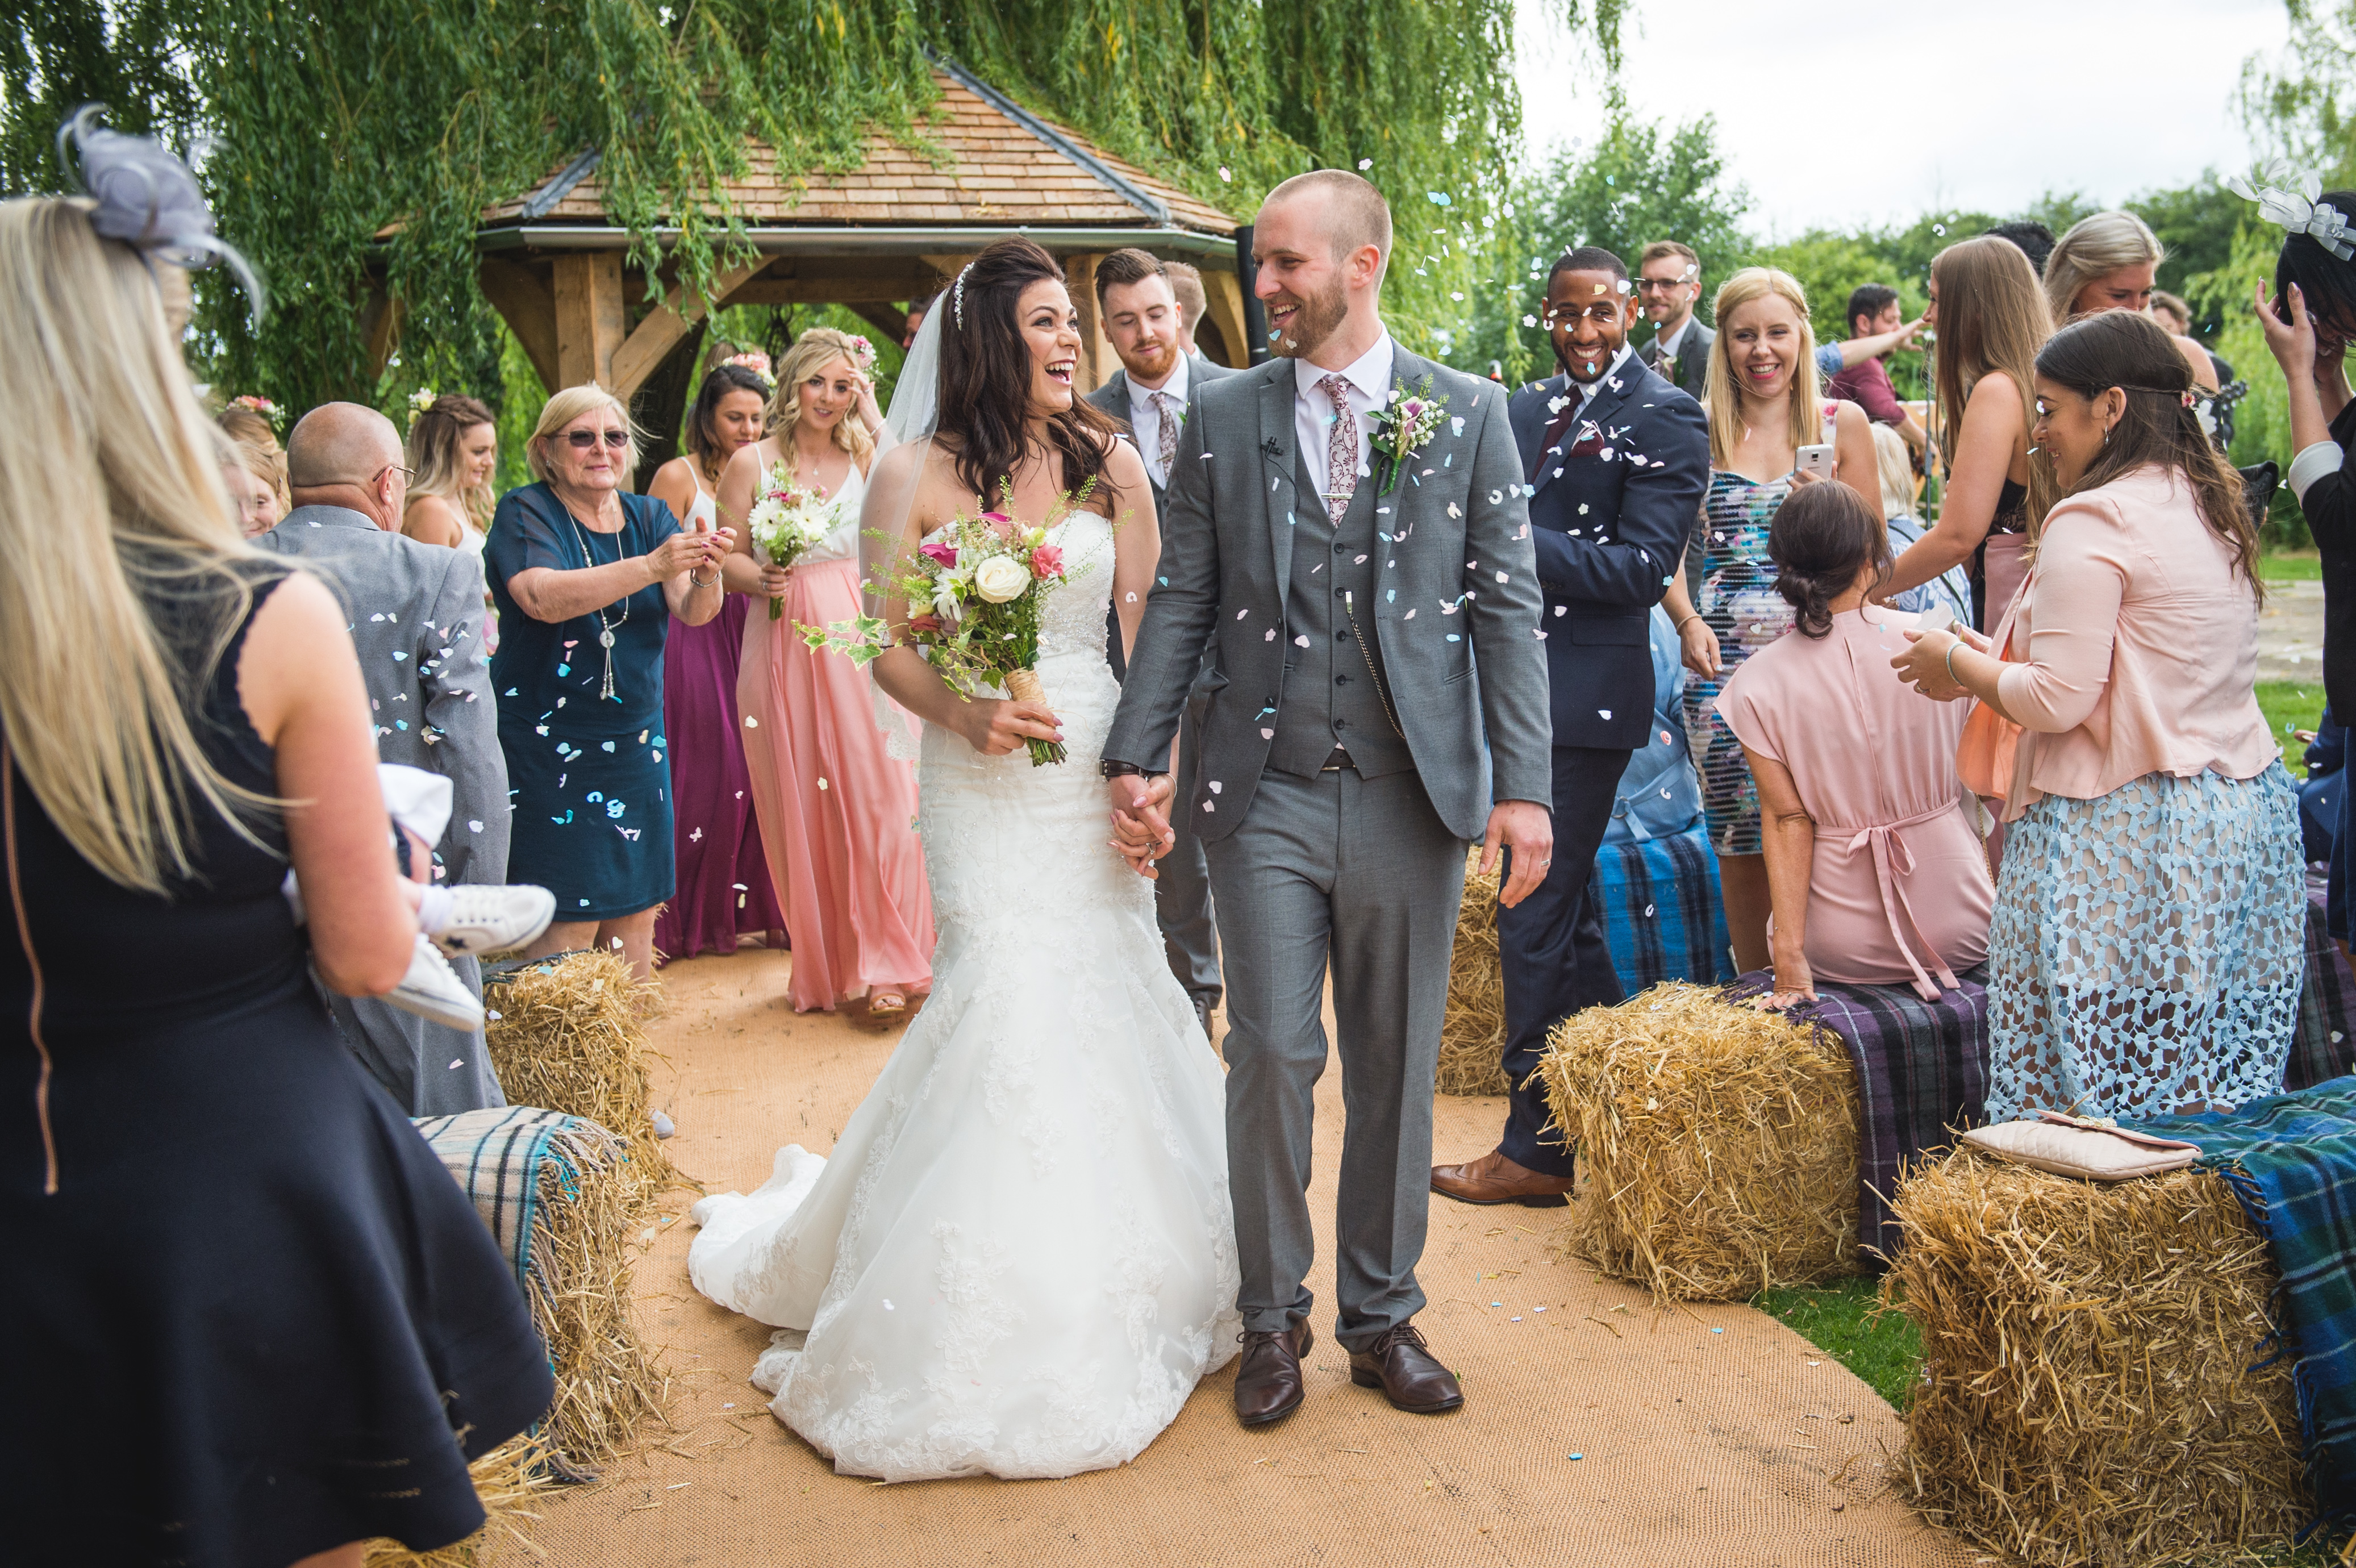 Haybale Wedding Ceremony at Skipbridge Country Wedding Venue captured by Will Hey Photography